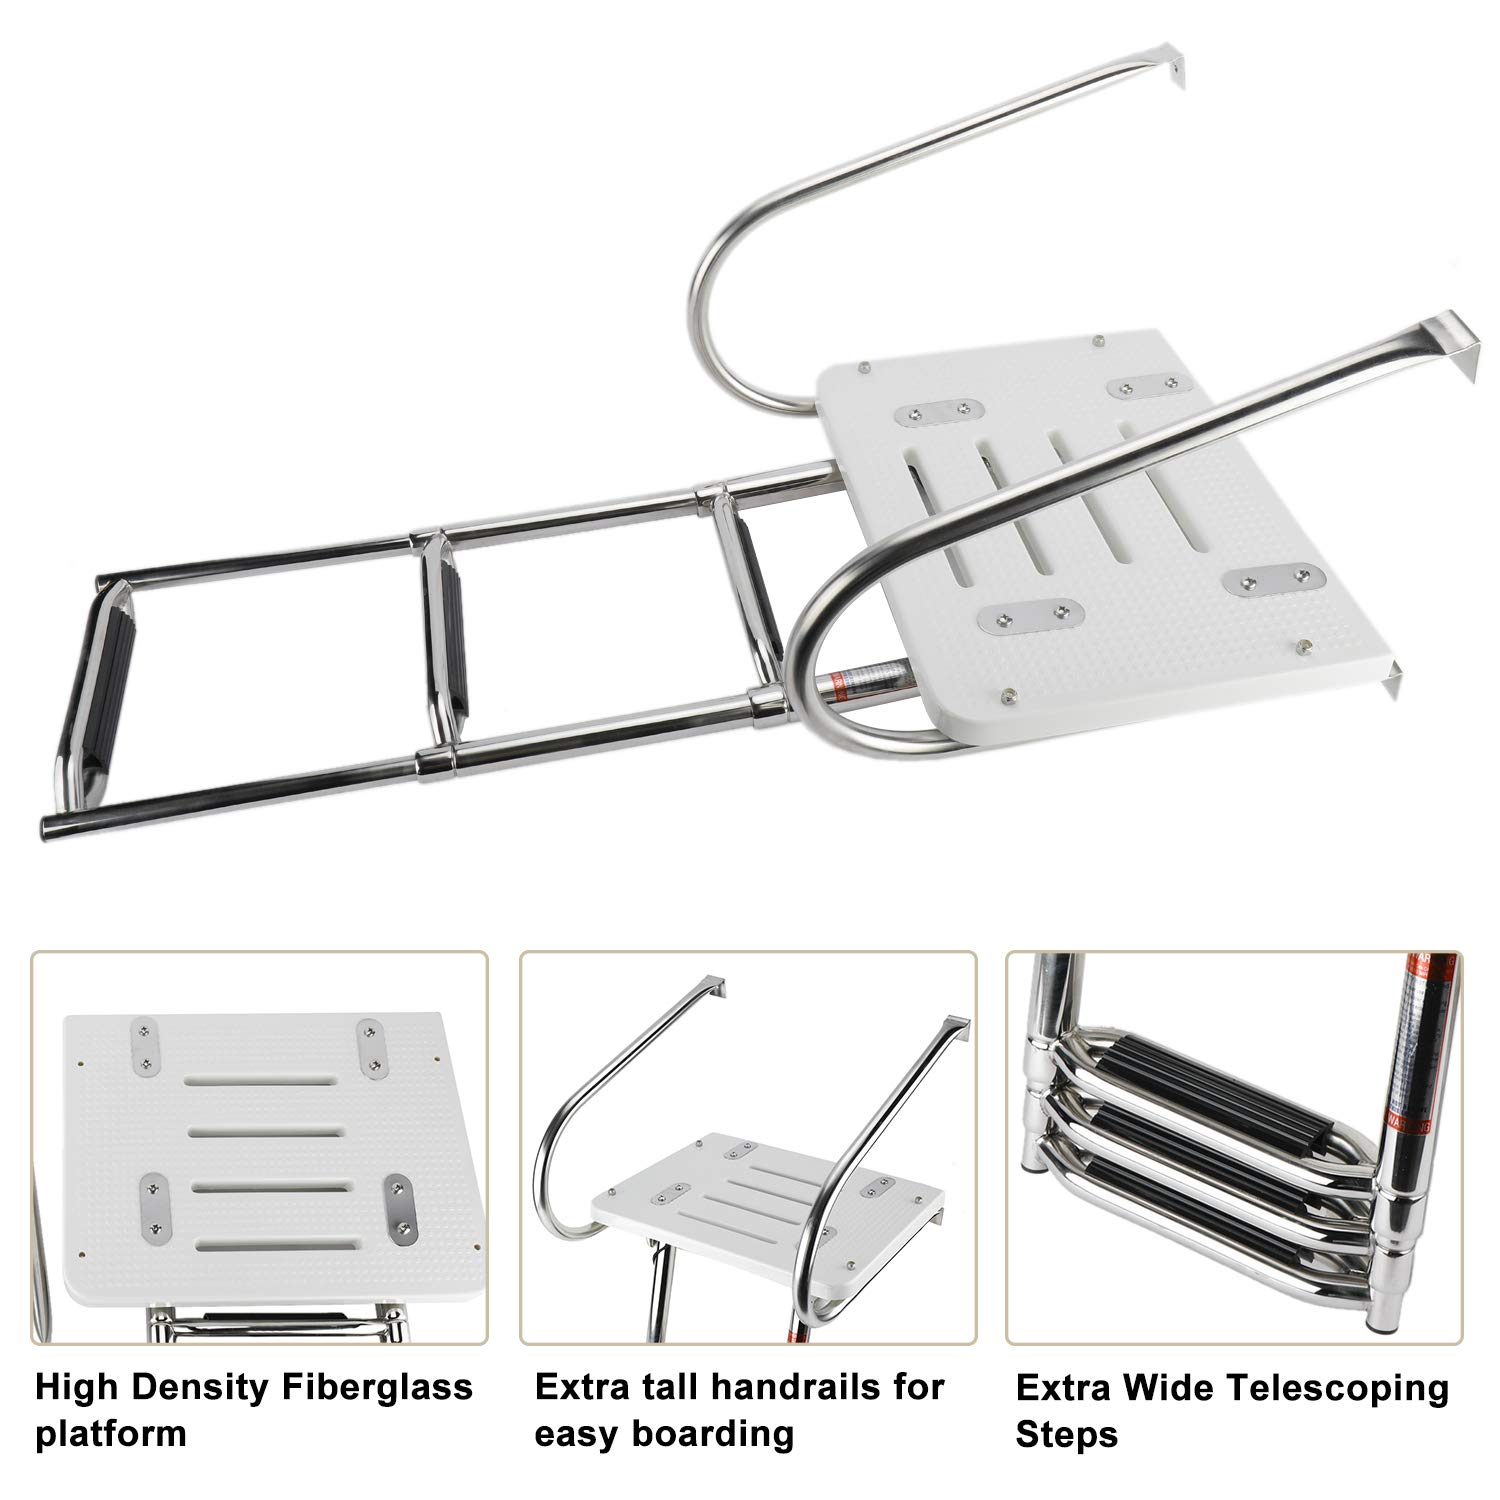 NovelBee 3 Step Universal Inboard Swim Fiberglass Platform Fold Down Ladder with Extra Wide Step and Two Handrails,Under Slide Mount Telescopic Boat Ladder with Mounting Hardware